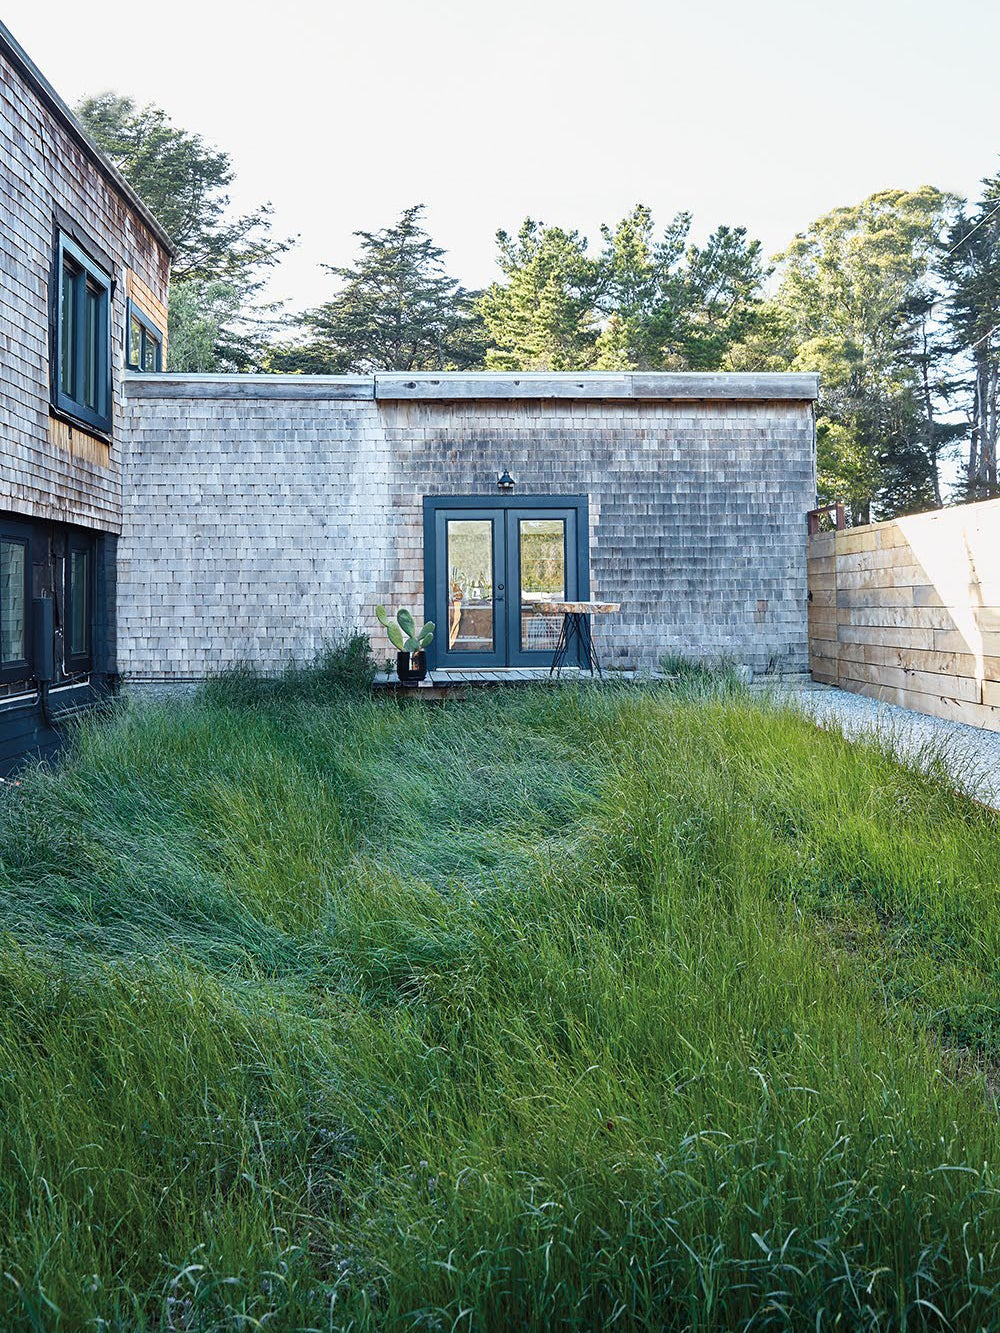 Building with expansive lawn